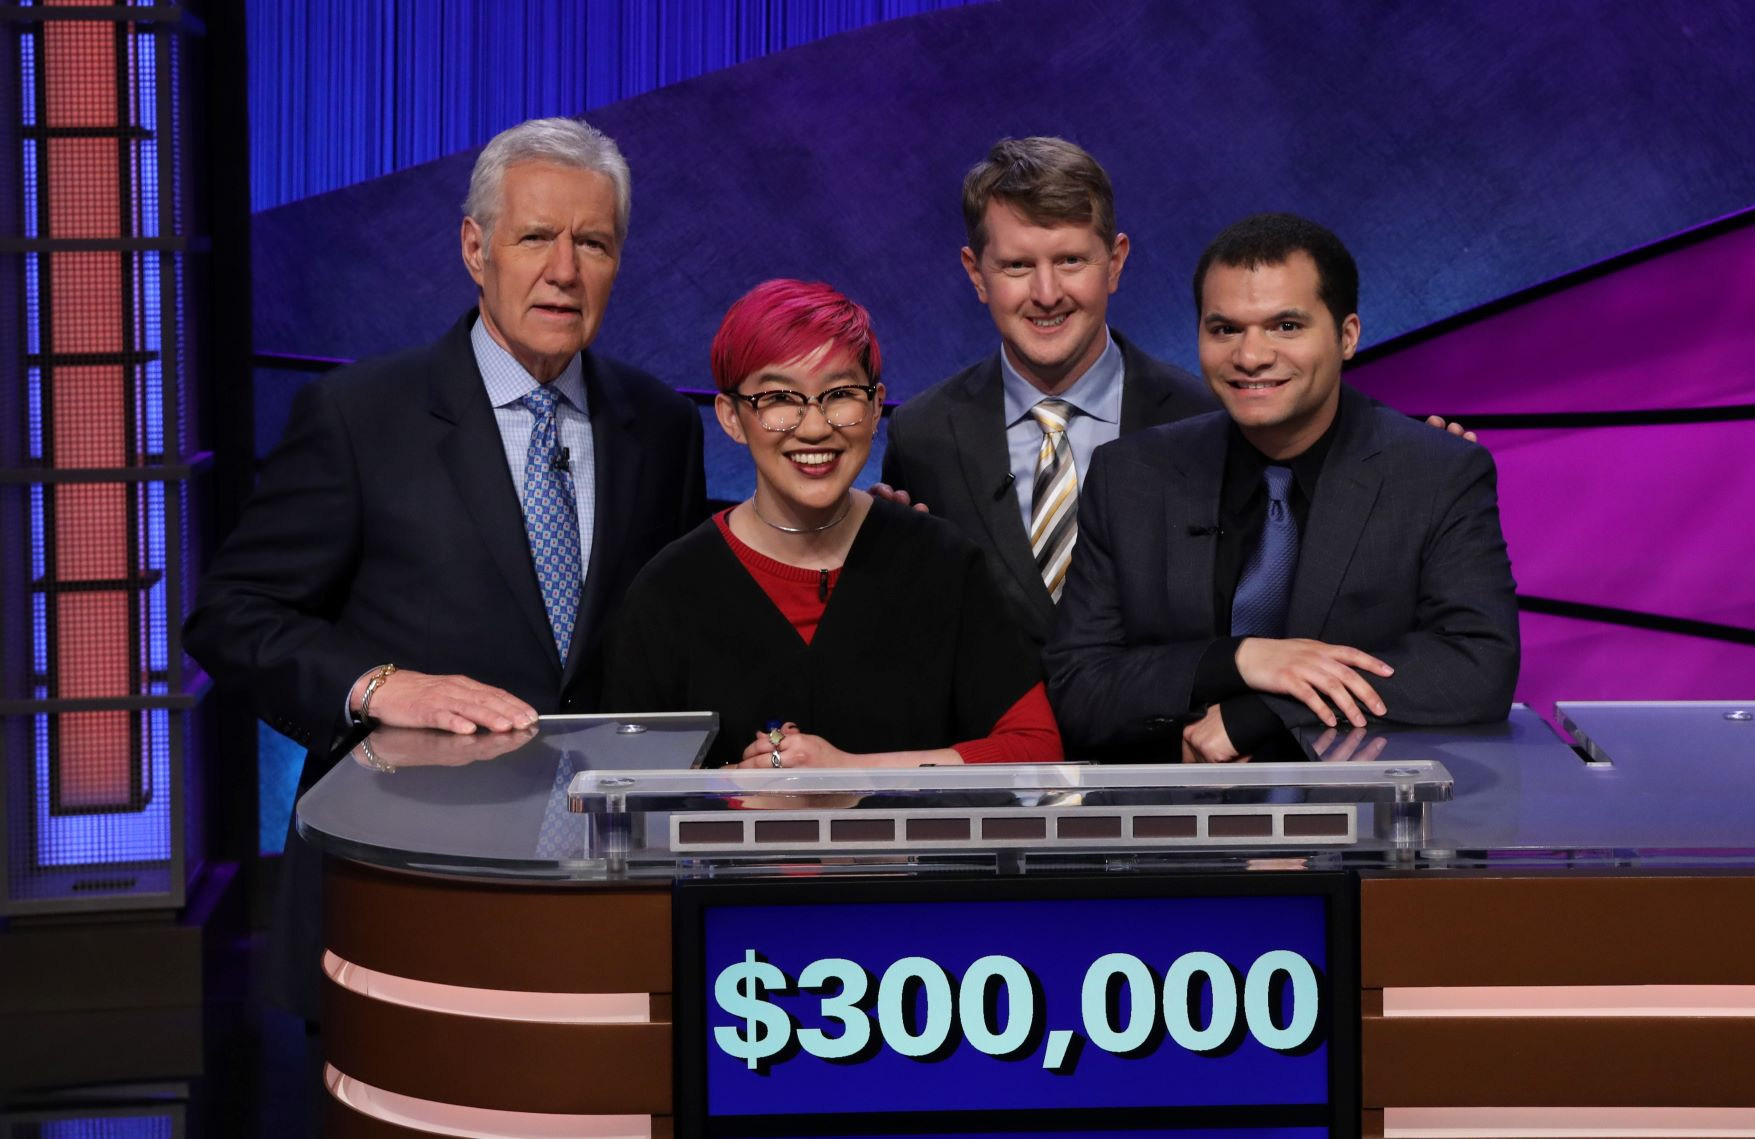 The Online Jeopardy Test Is About To Happen And Ken Jennings Is Here To Help You Succeed